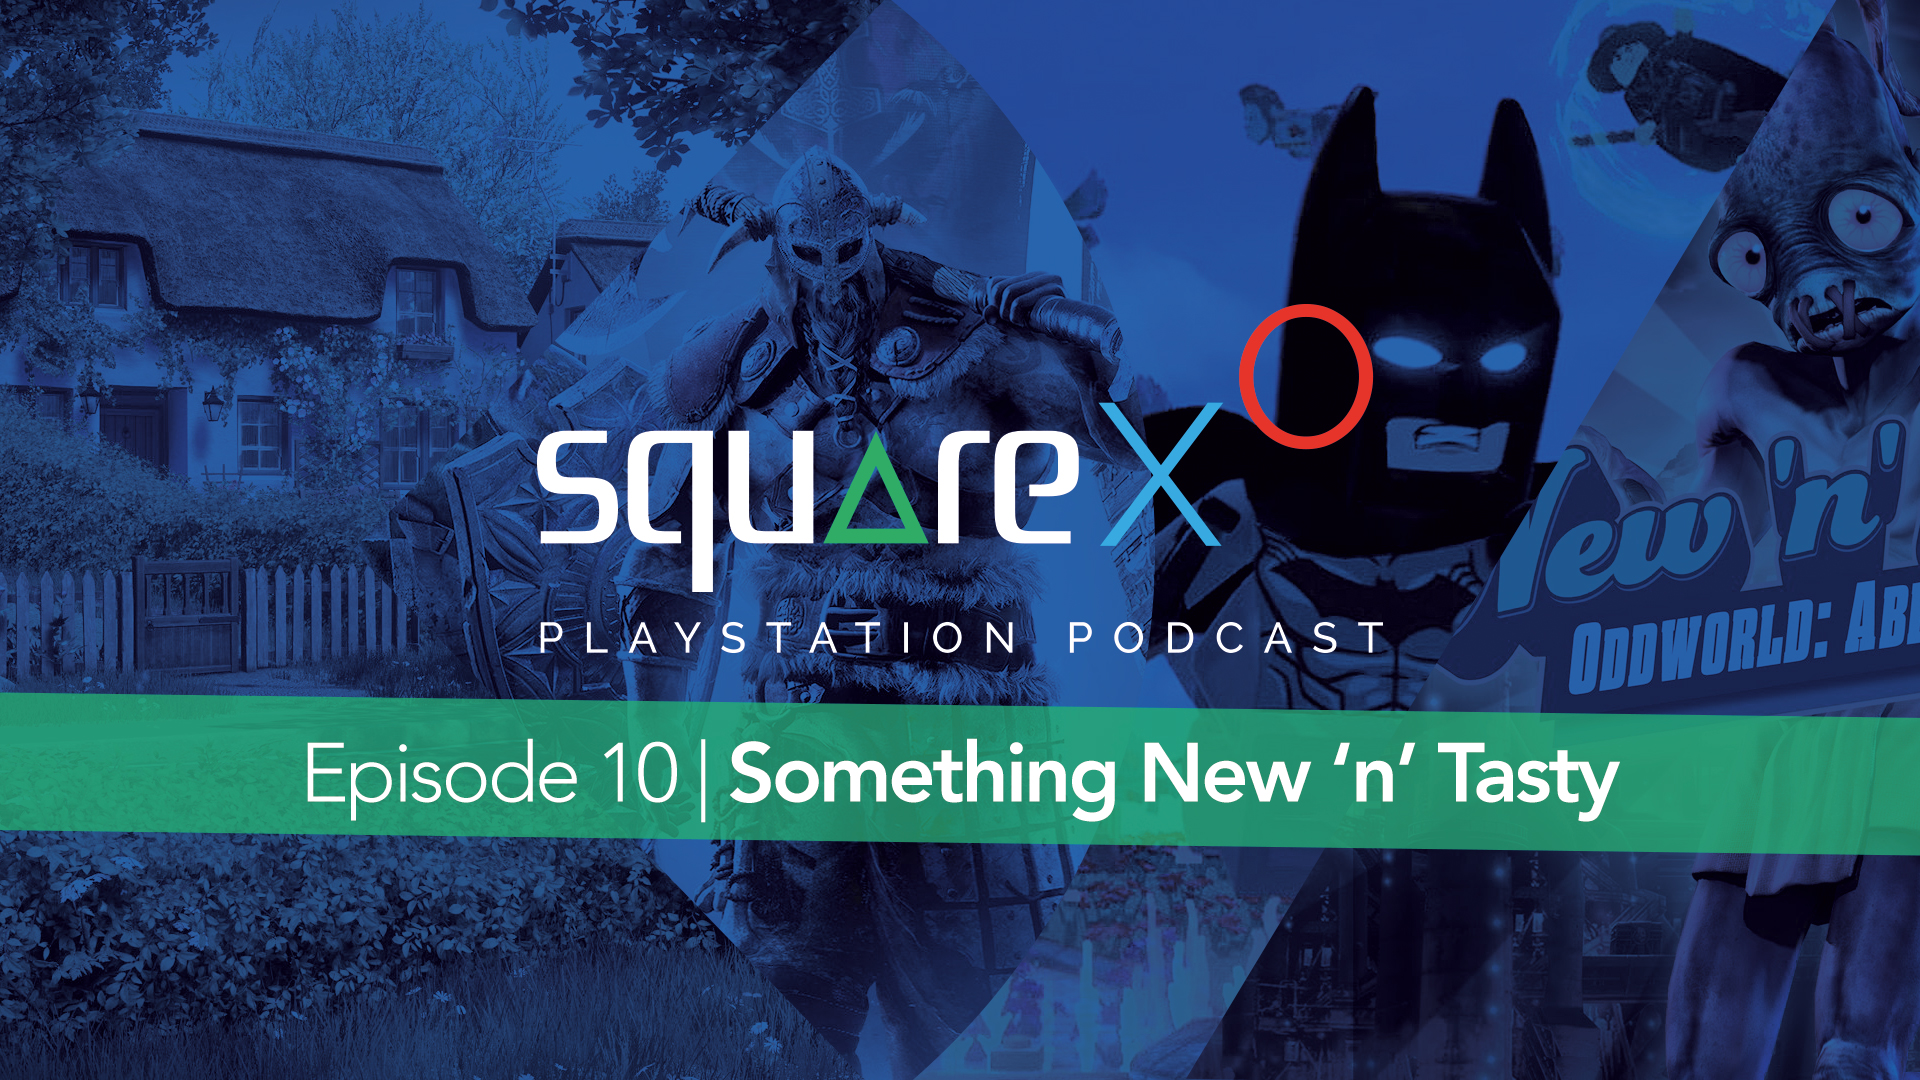 Episode 10 | Something New 'n' Tasty